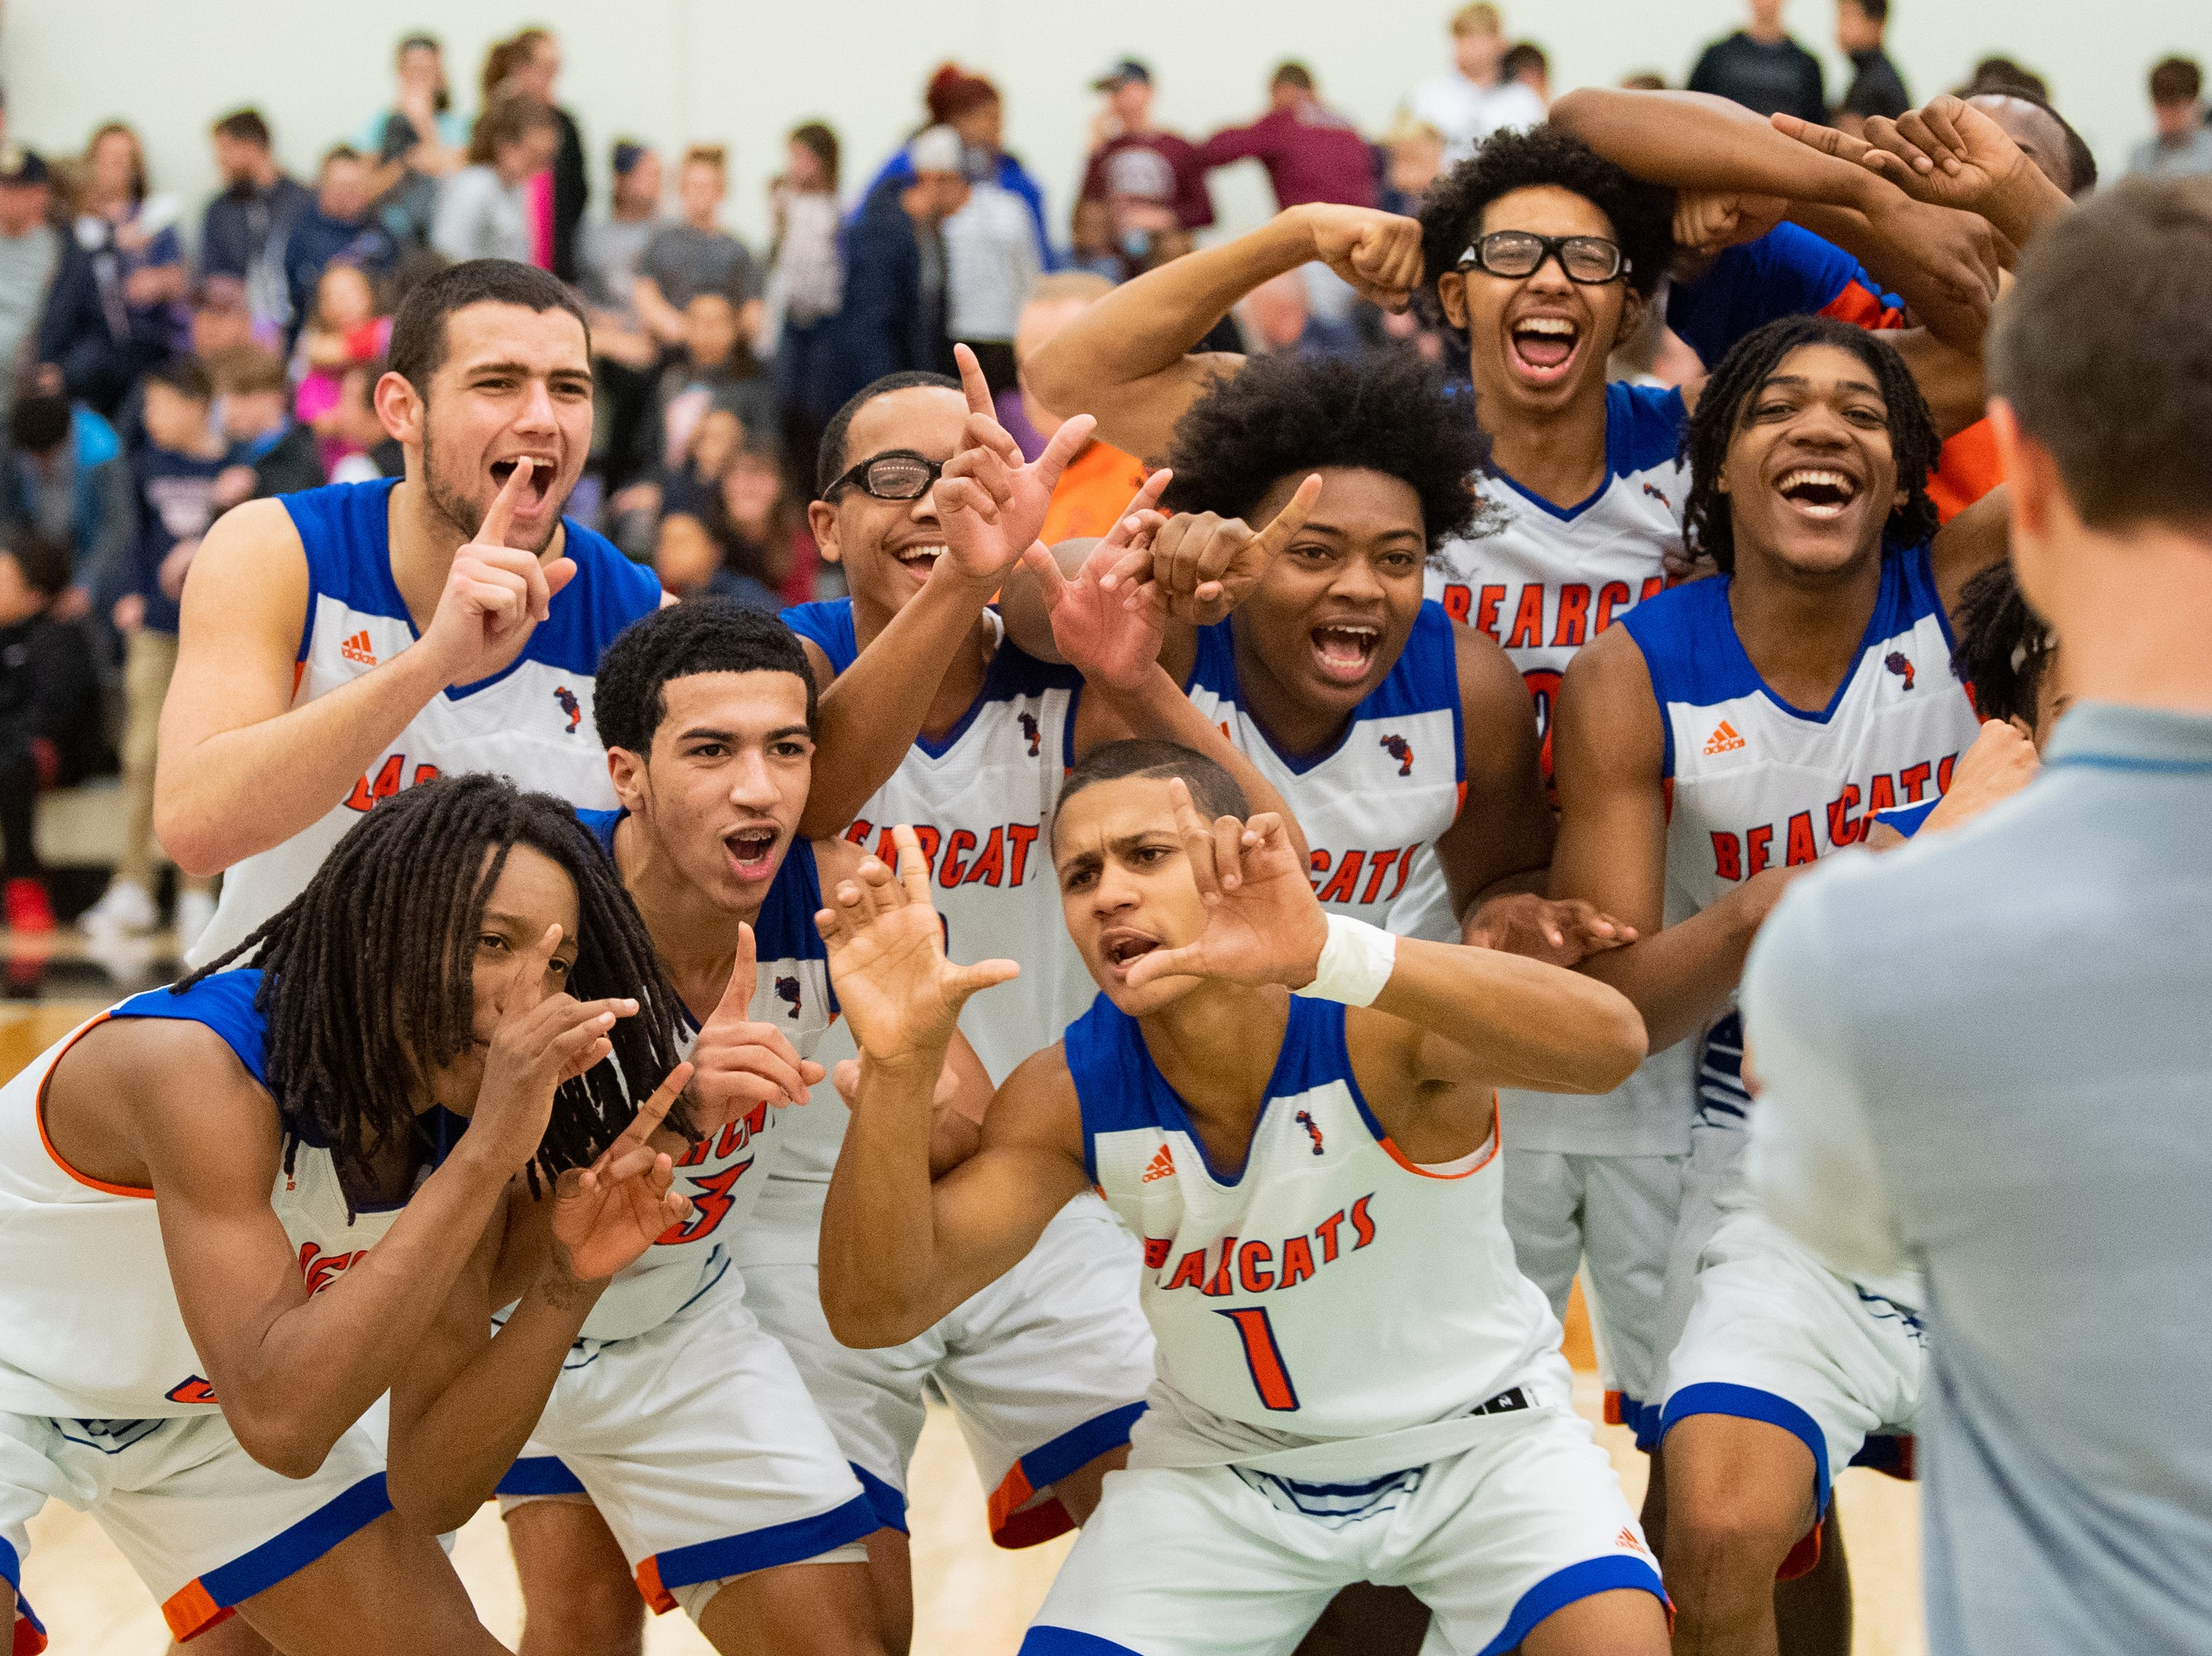 York High celebrates their tough win over New Oxford, Friday, February 15, 2019 at York College. The Bearcats defeated the Colonials 54 to 50.